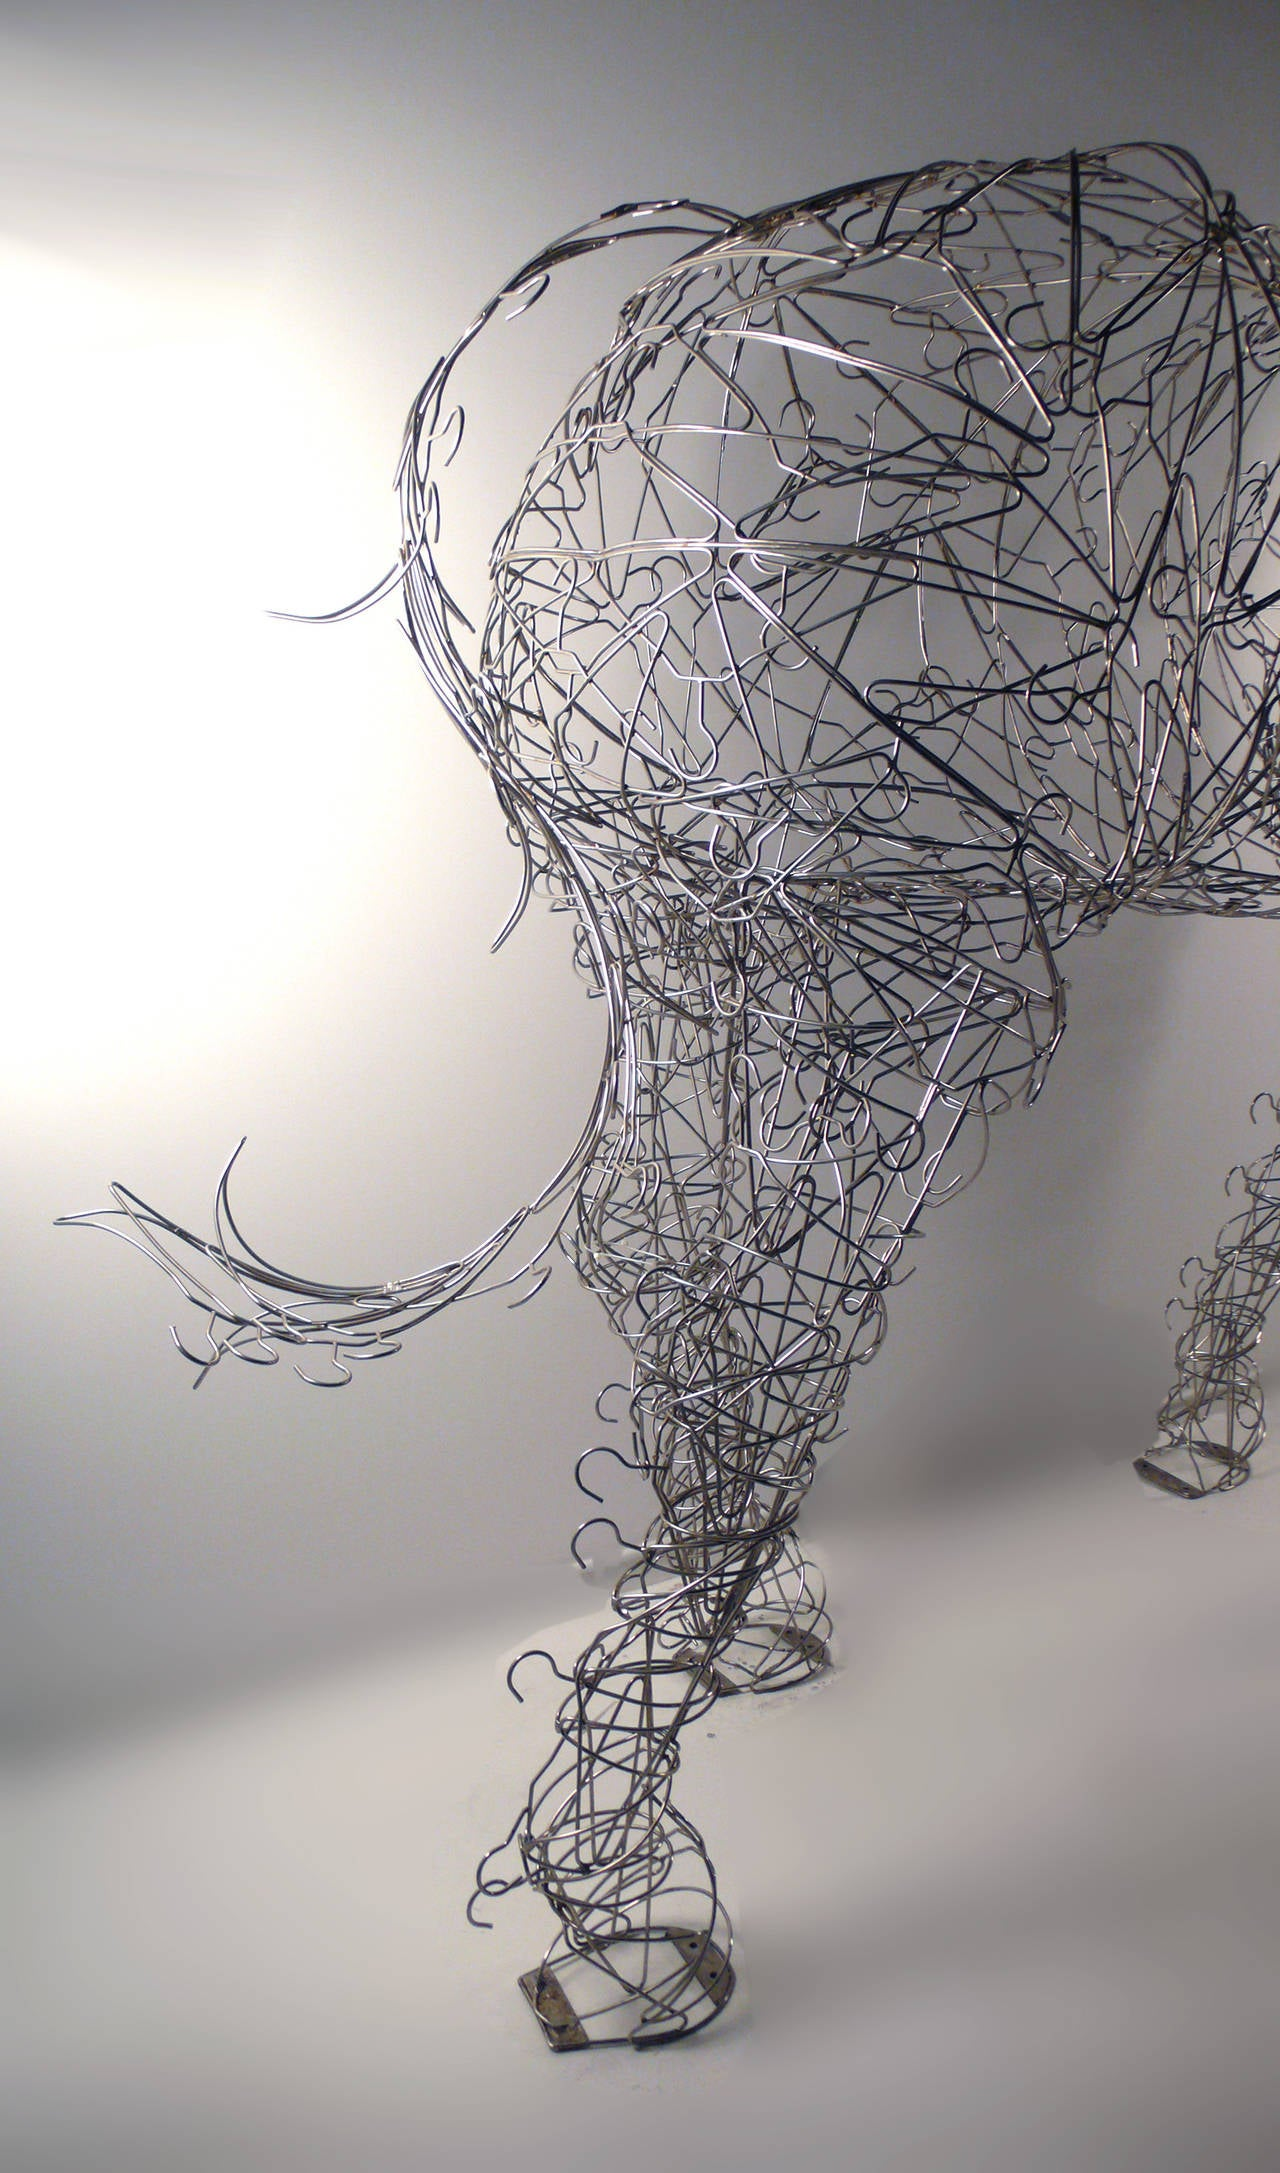 Steel Massive Horse Sculpture Crafted From 1000 Chrome Coat Hangers for Barneys NY For Sale